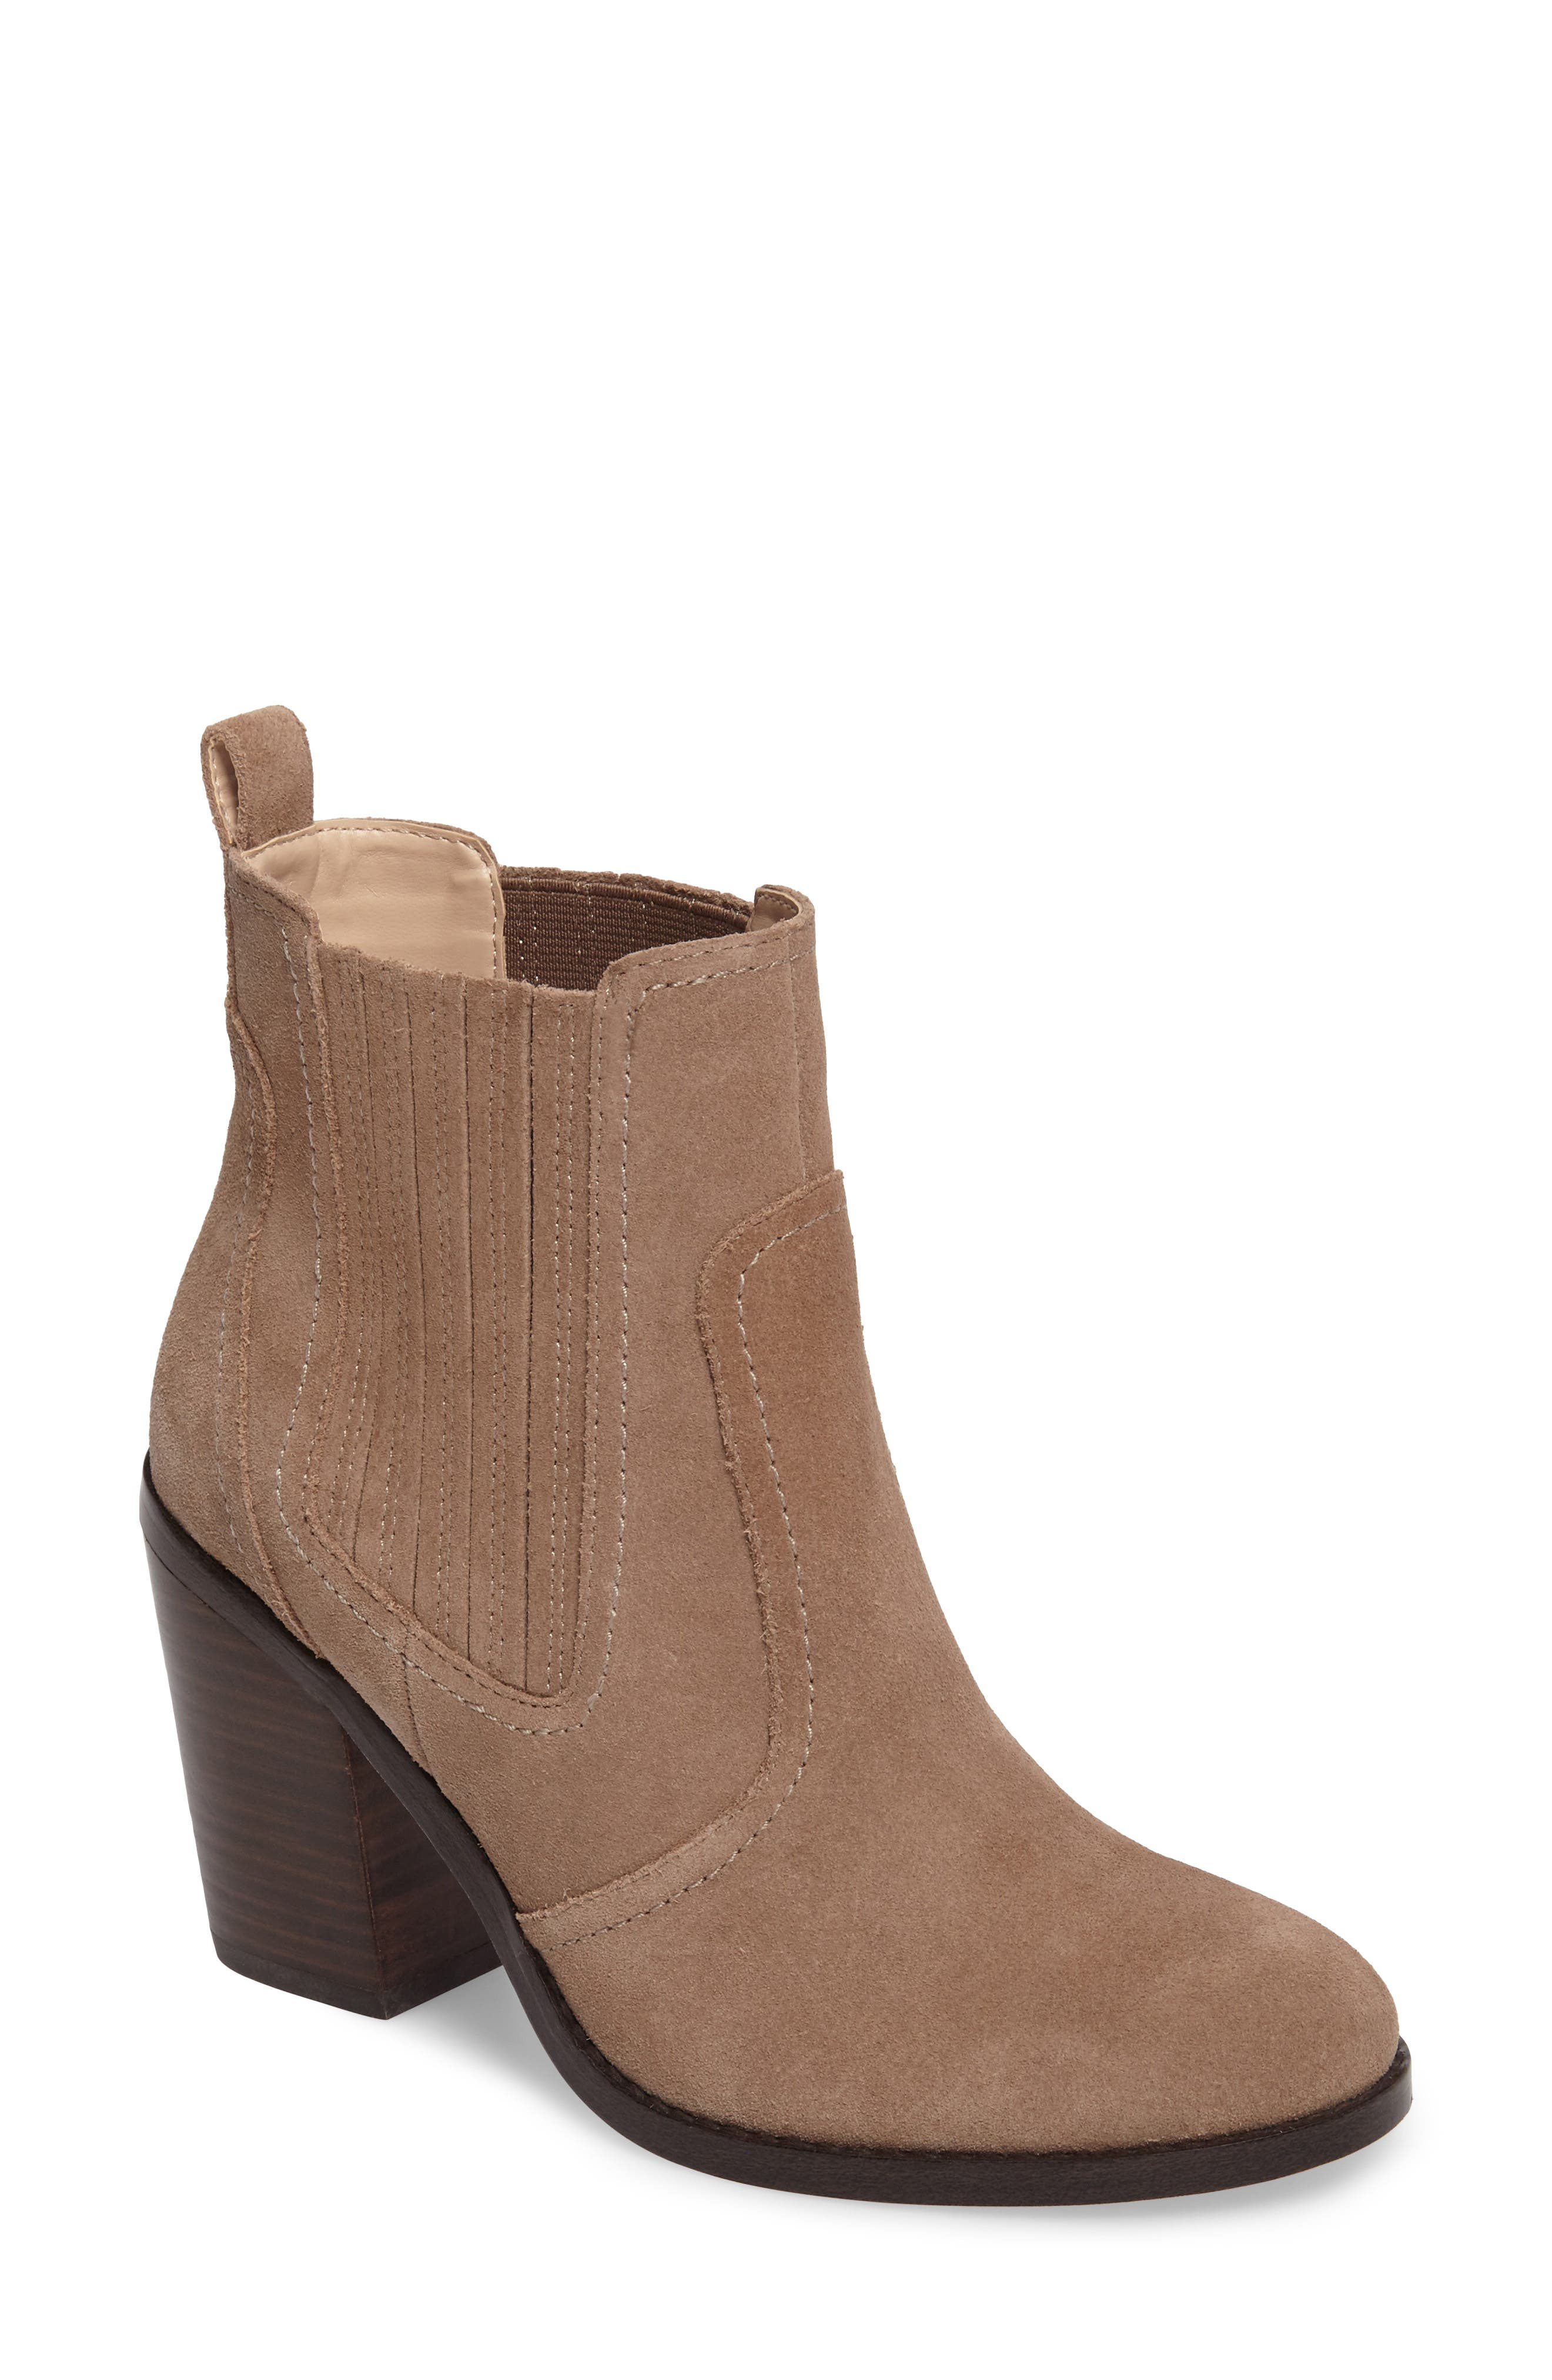 Main Image - Sole Society Harbor Bootie (Women)